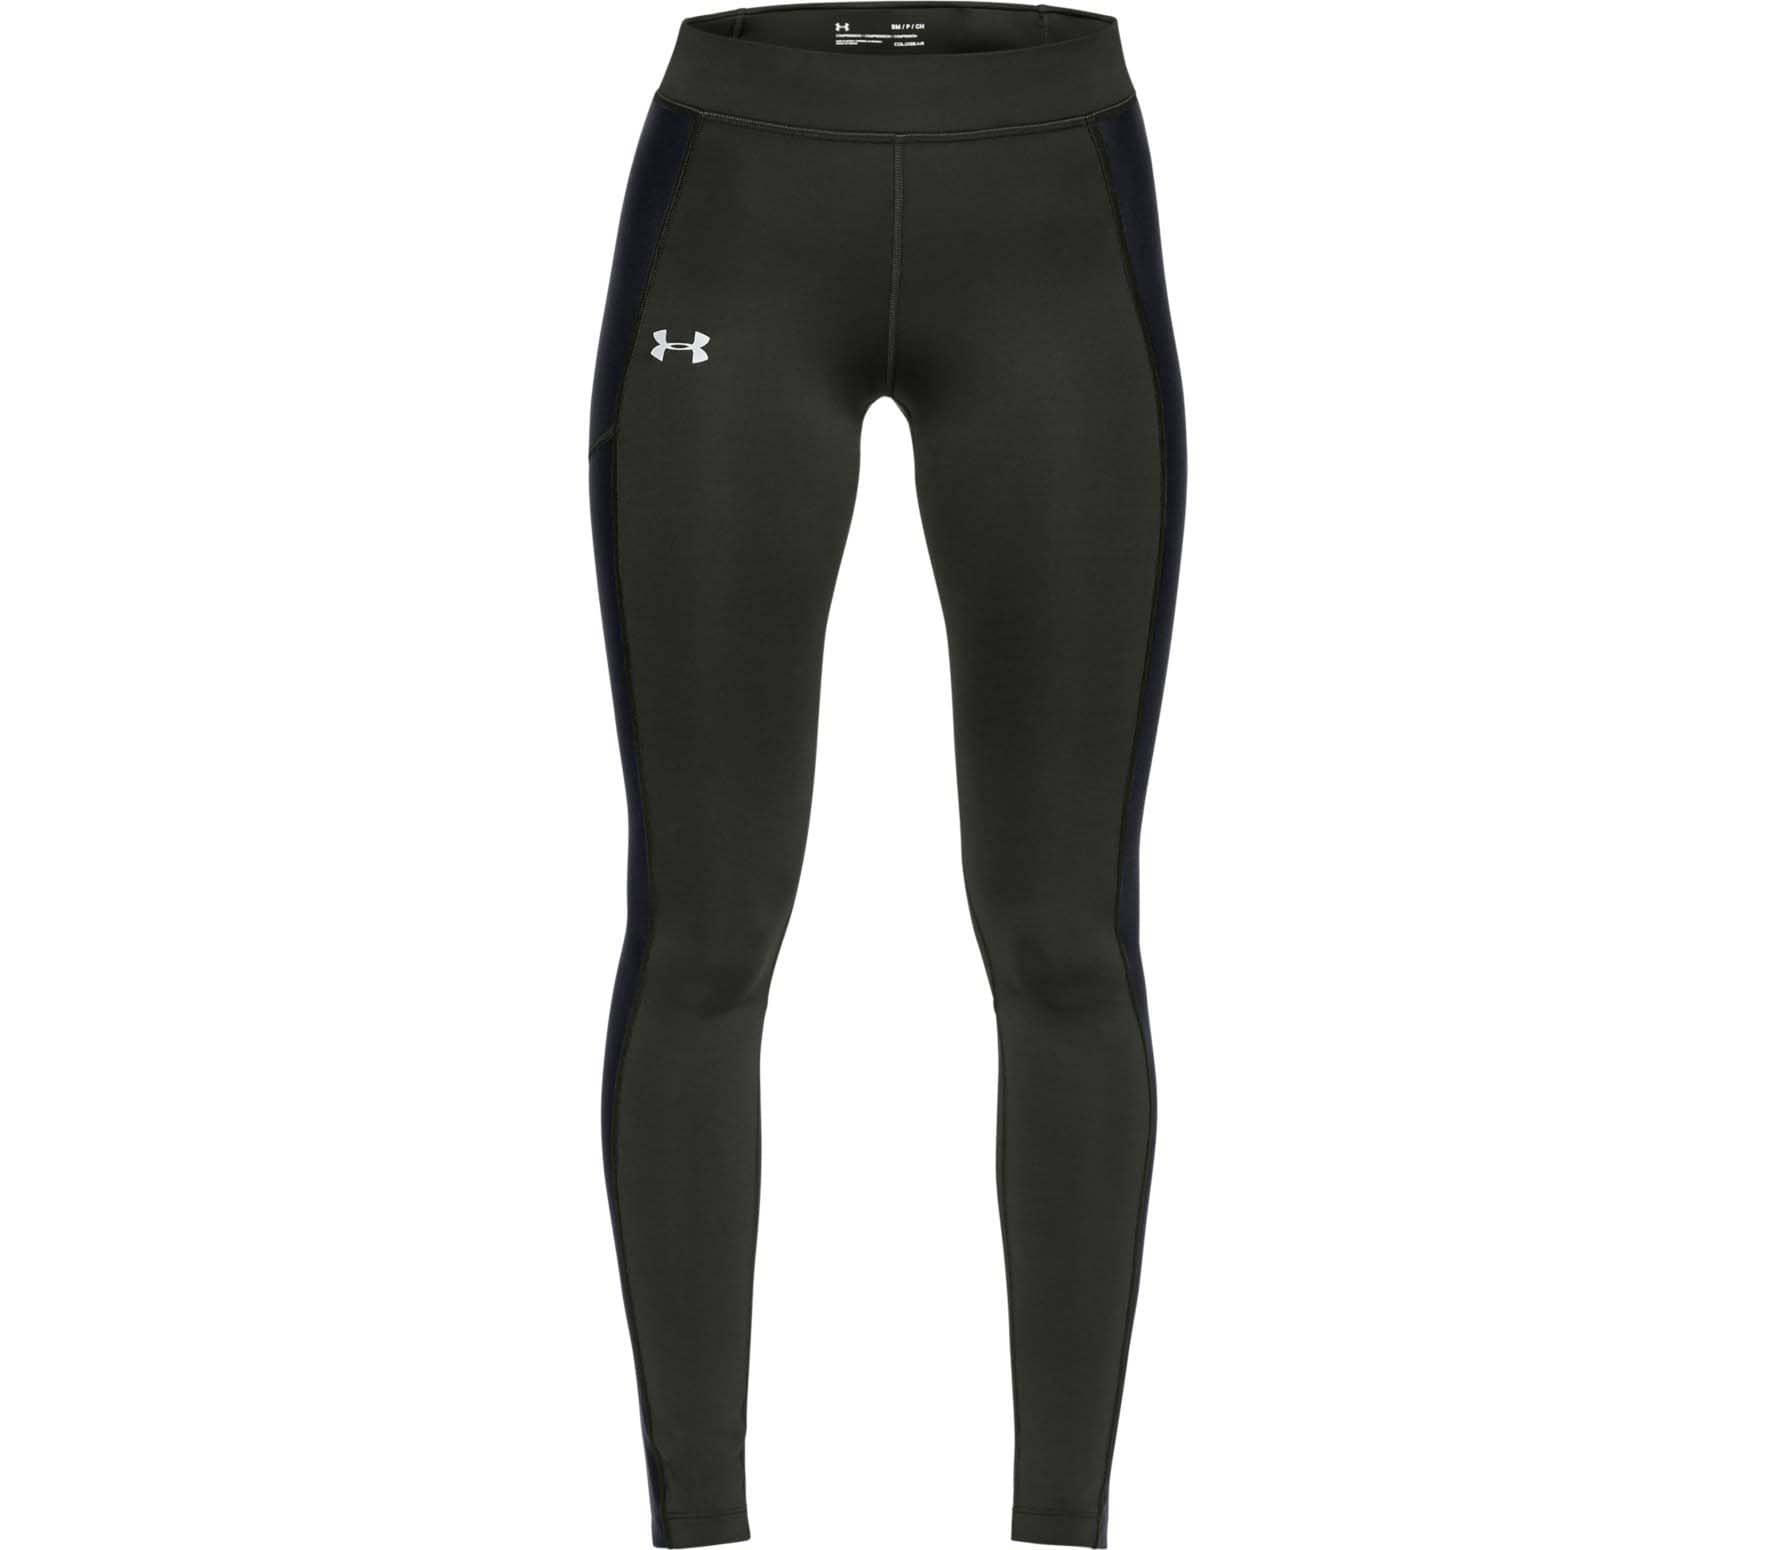 dd942c244b407 Under Armour - ColdGear® Run Storm women's running pants (green ...